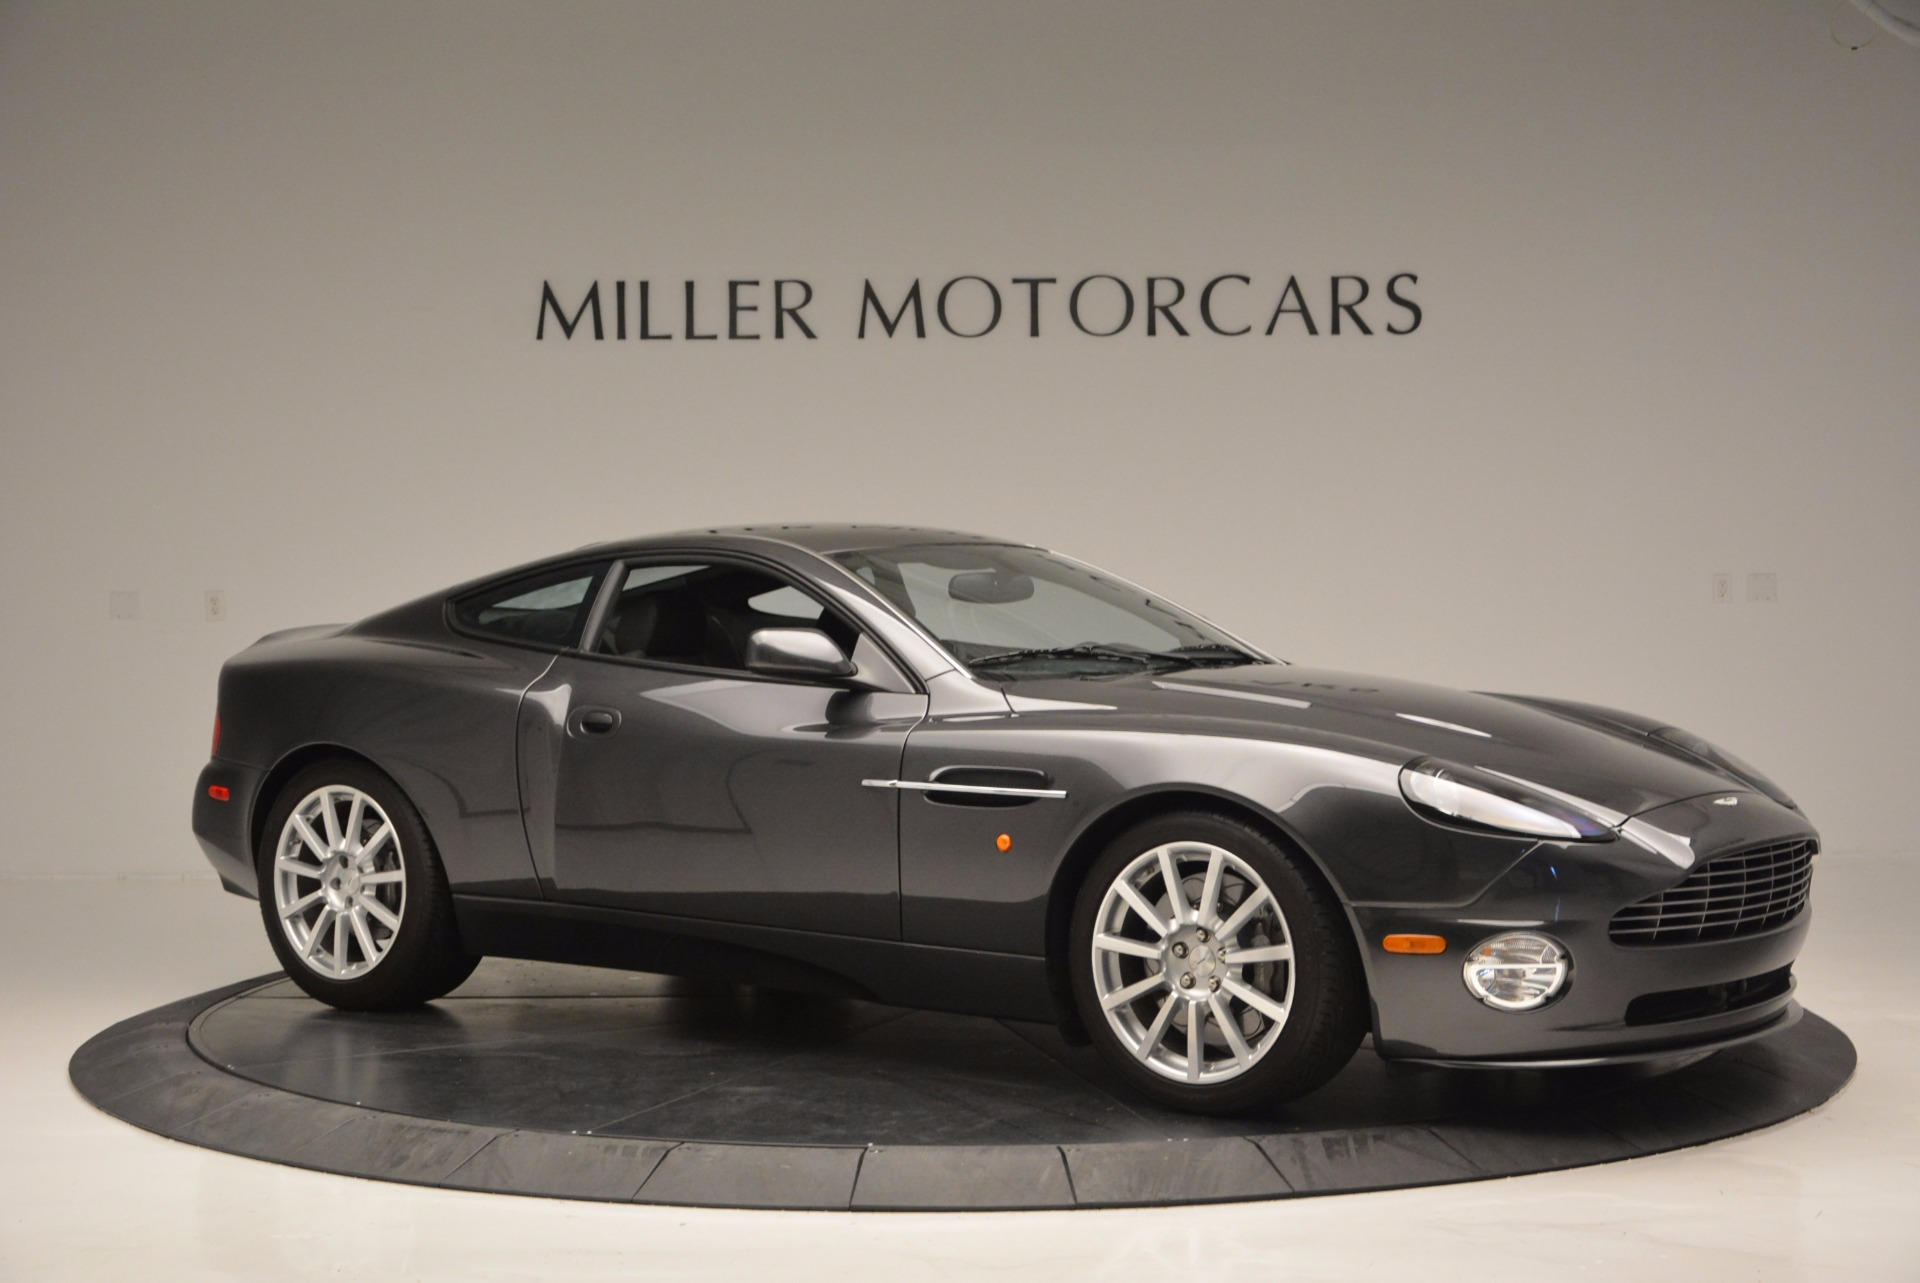 Used 2005 Aston Martin V12 Vanquish S For Sale In Westport, CT 645_p10